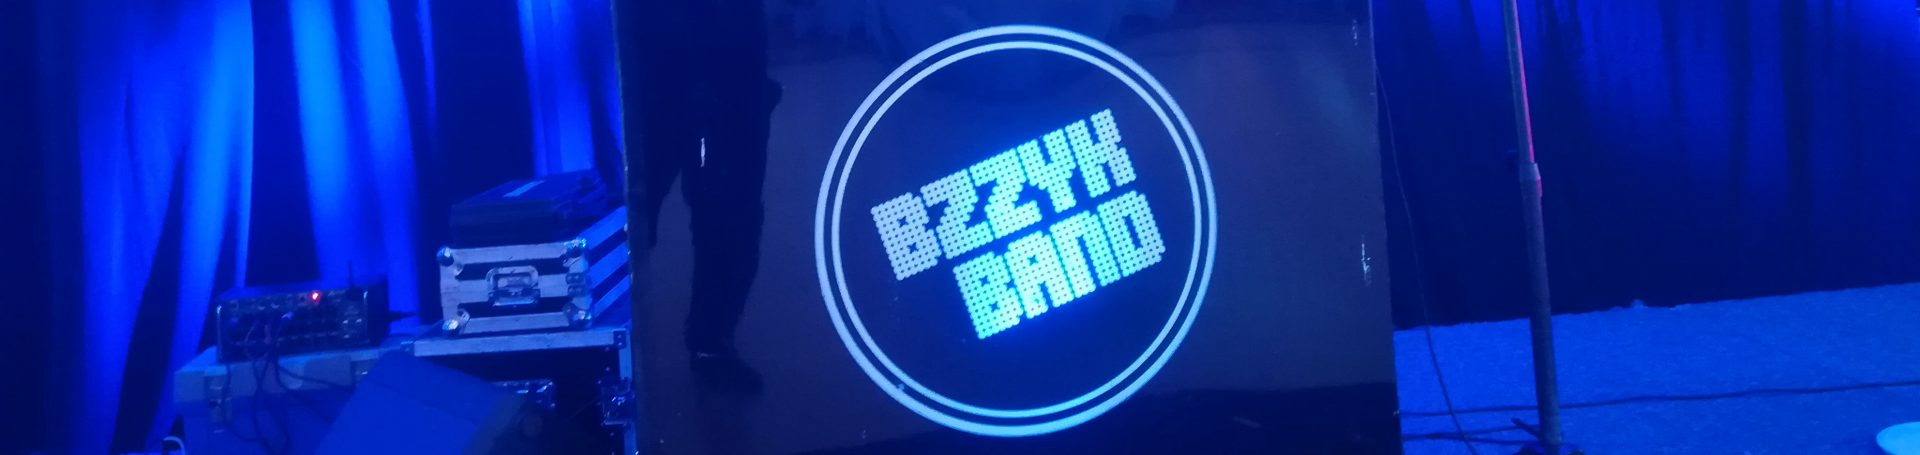 Bzzyk Band